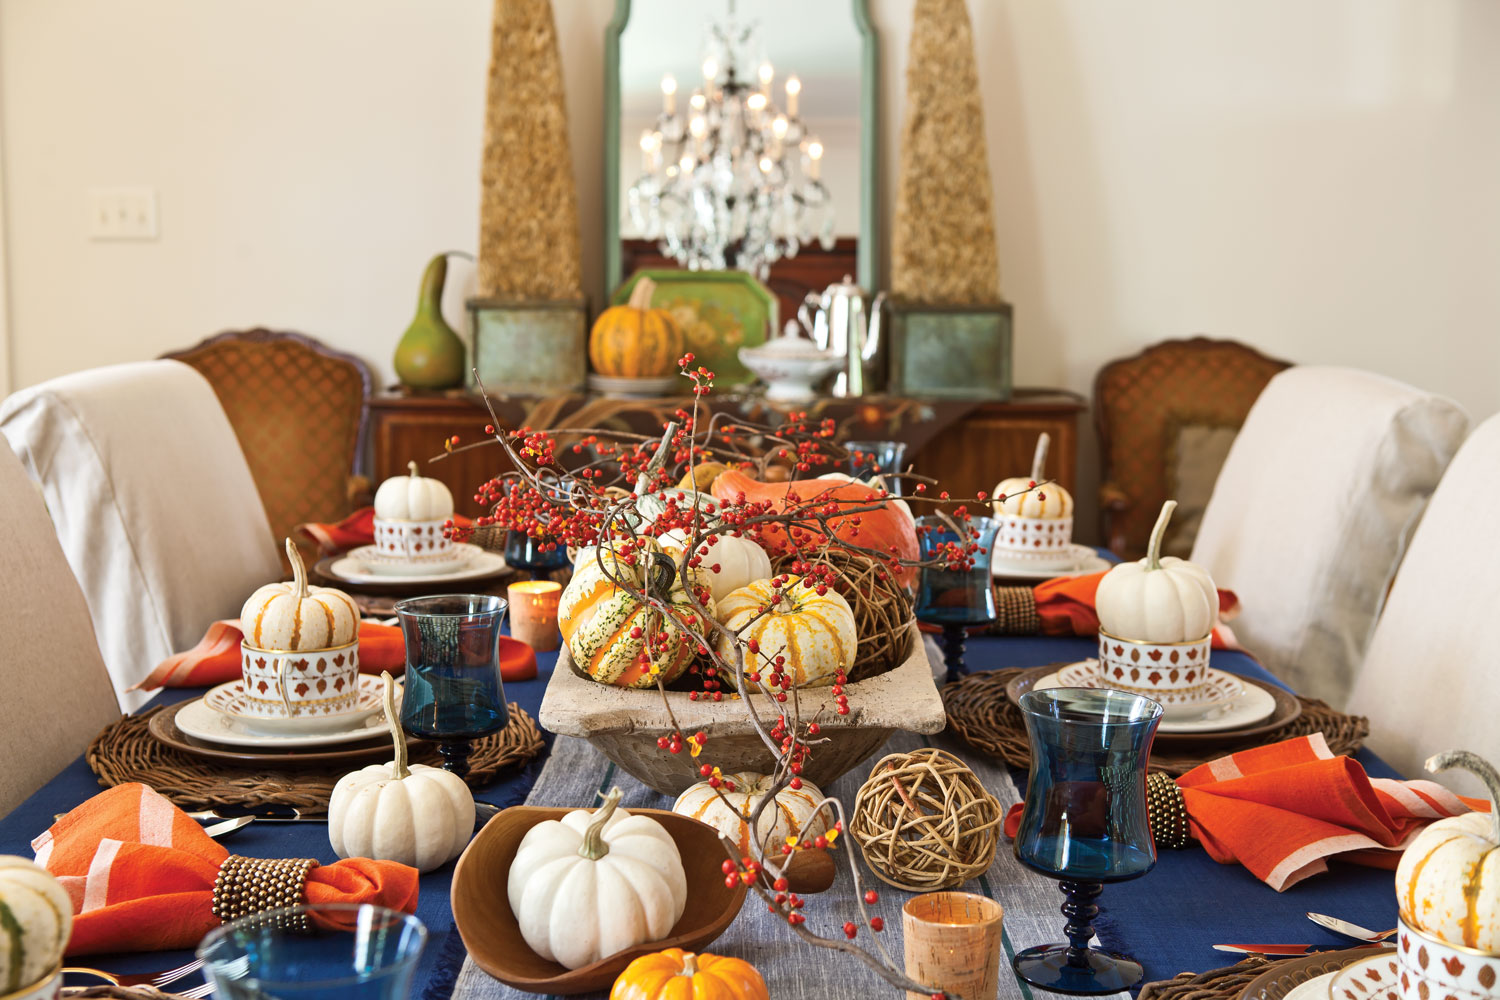 A picture of a table display with pumpkins and other fall elements